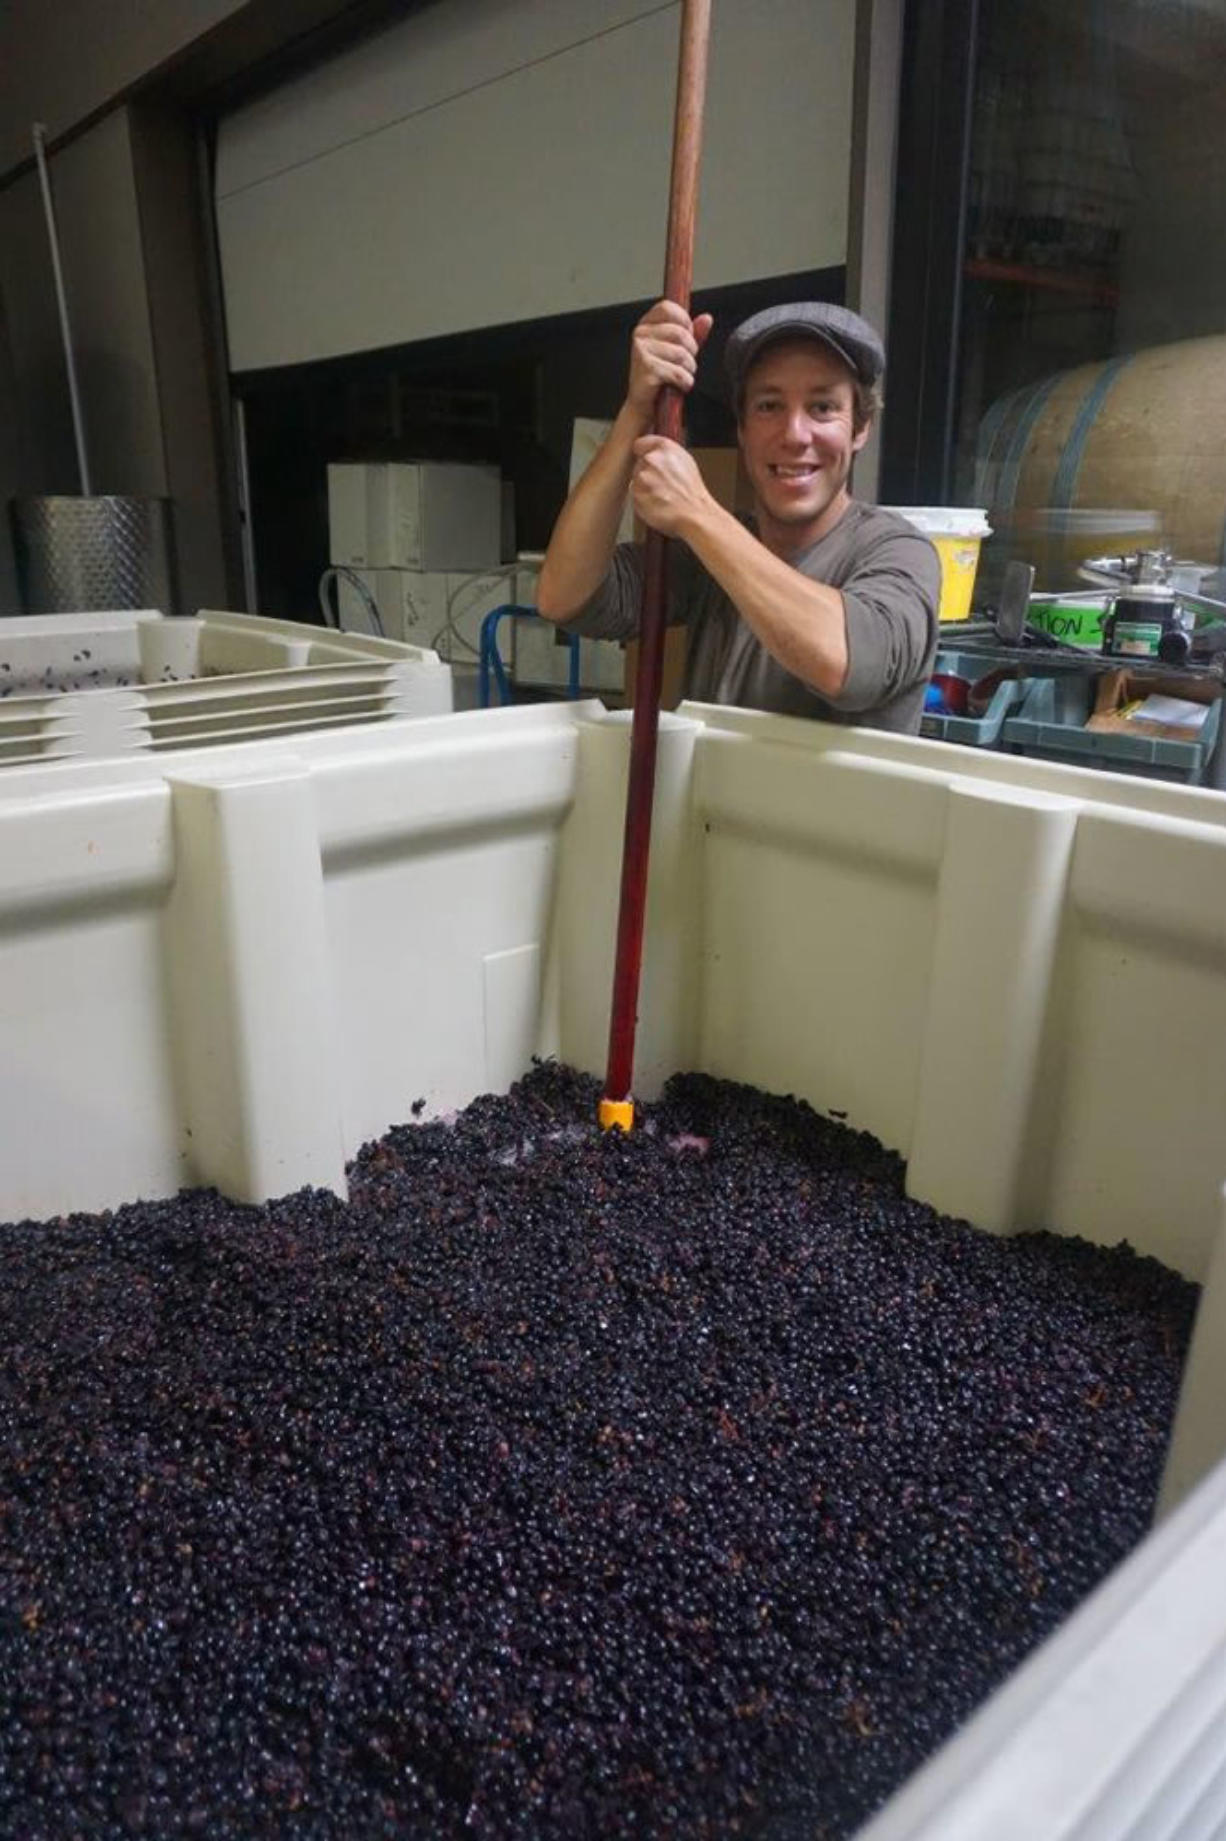 Working with Division Winemaking Company since its inception, French native Aurelian punches down grapes on the production floor at Southeast Wine Collective in Portland.